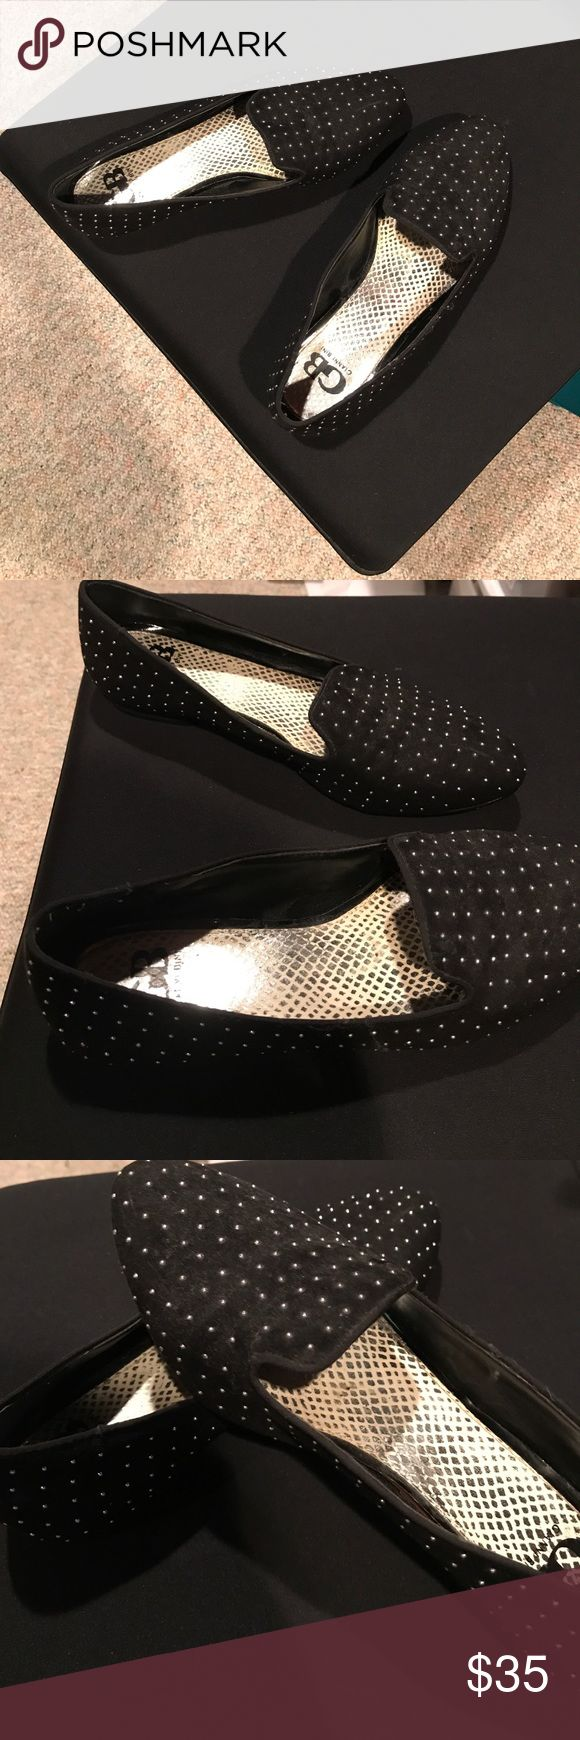 Black Gianni Bini loafer Black Gianni Bini loafers. The 'polka dot' is a small silver ball. Worn only a few times. Gianni Bini Shoes Flats & Loafers